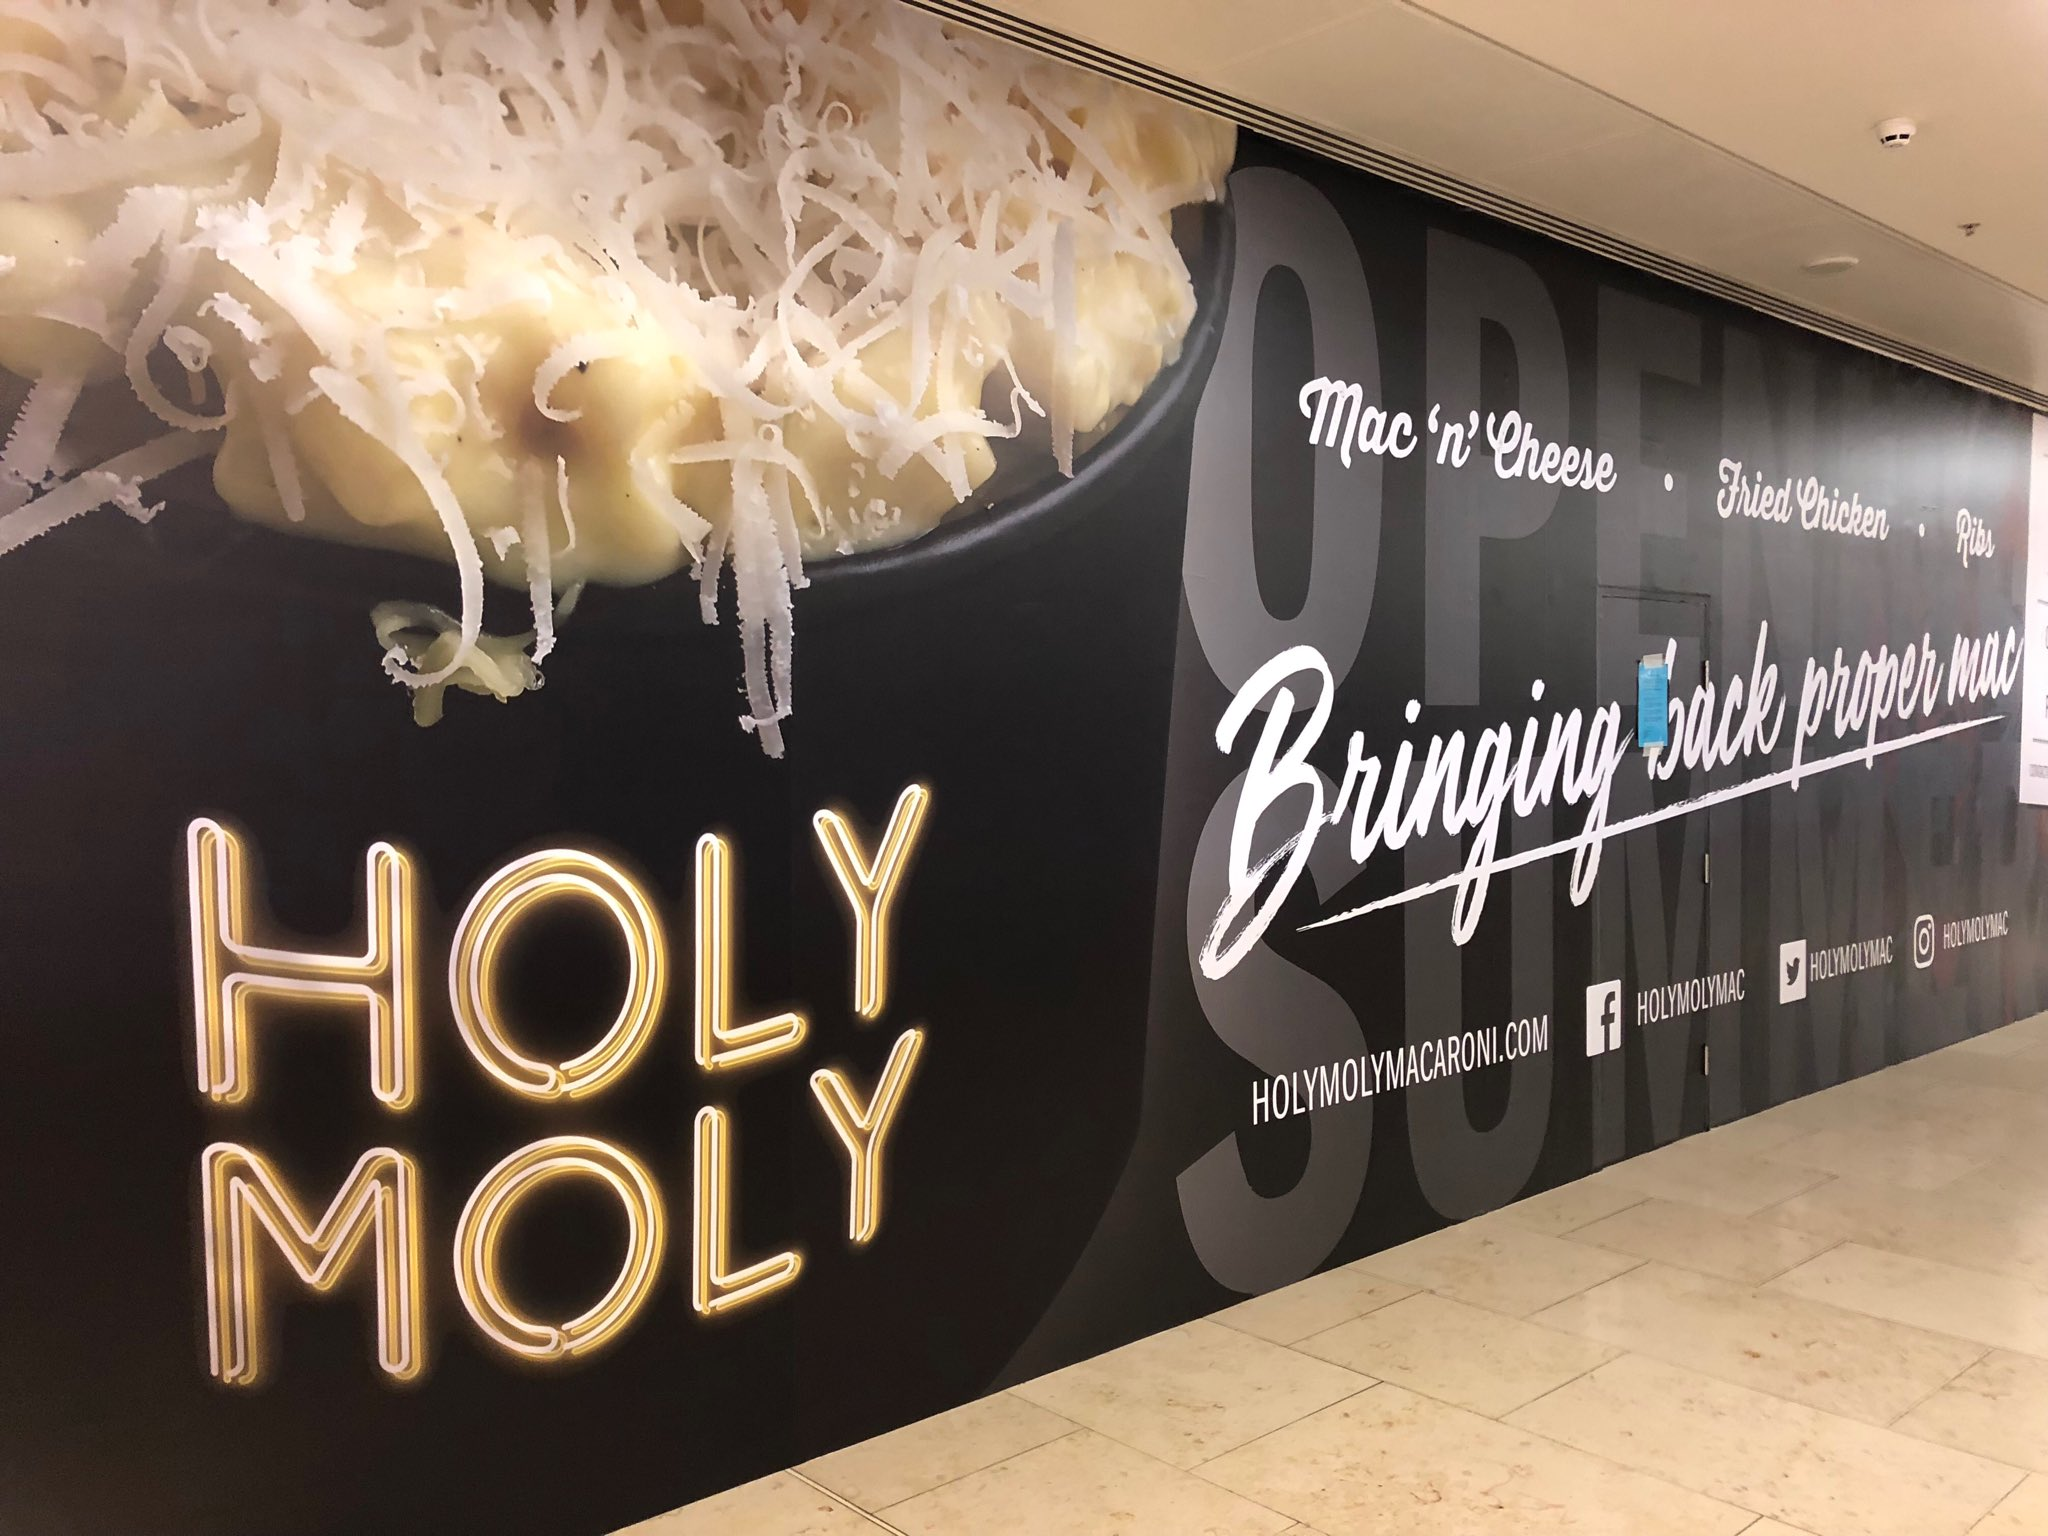 Holy Moly Macaroni to open its first store in Grand Central